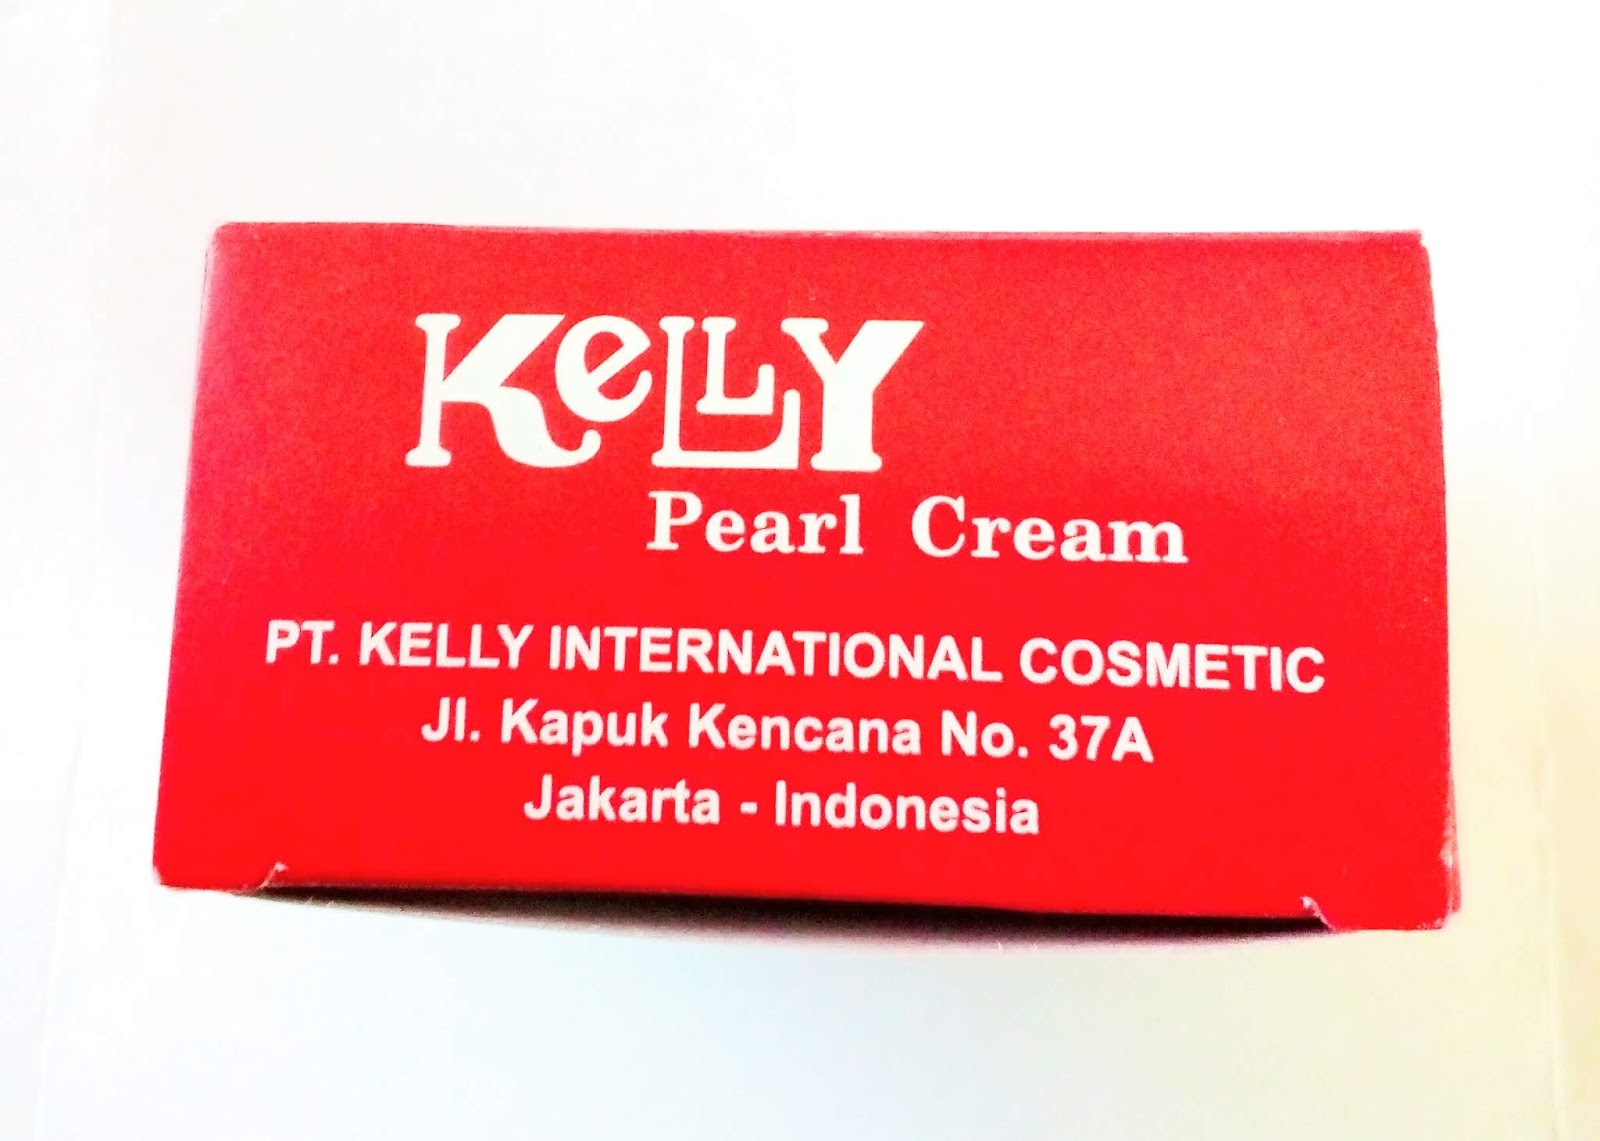 REVIEW : KELLY Pearl Cream, Rahasia Agar Wajah Tampak Glowing